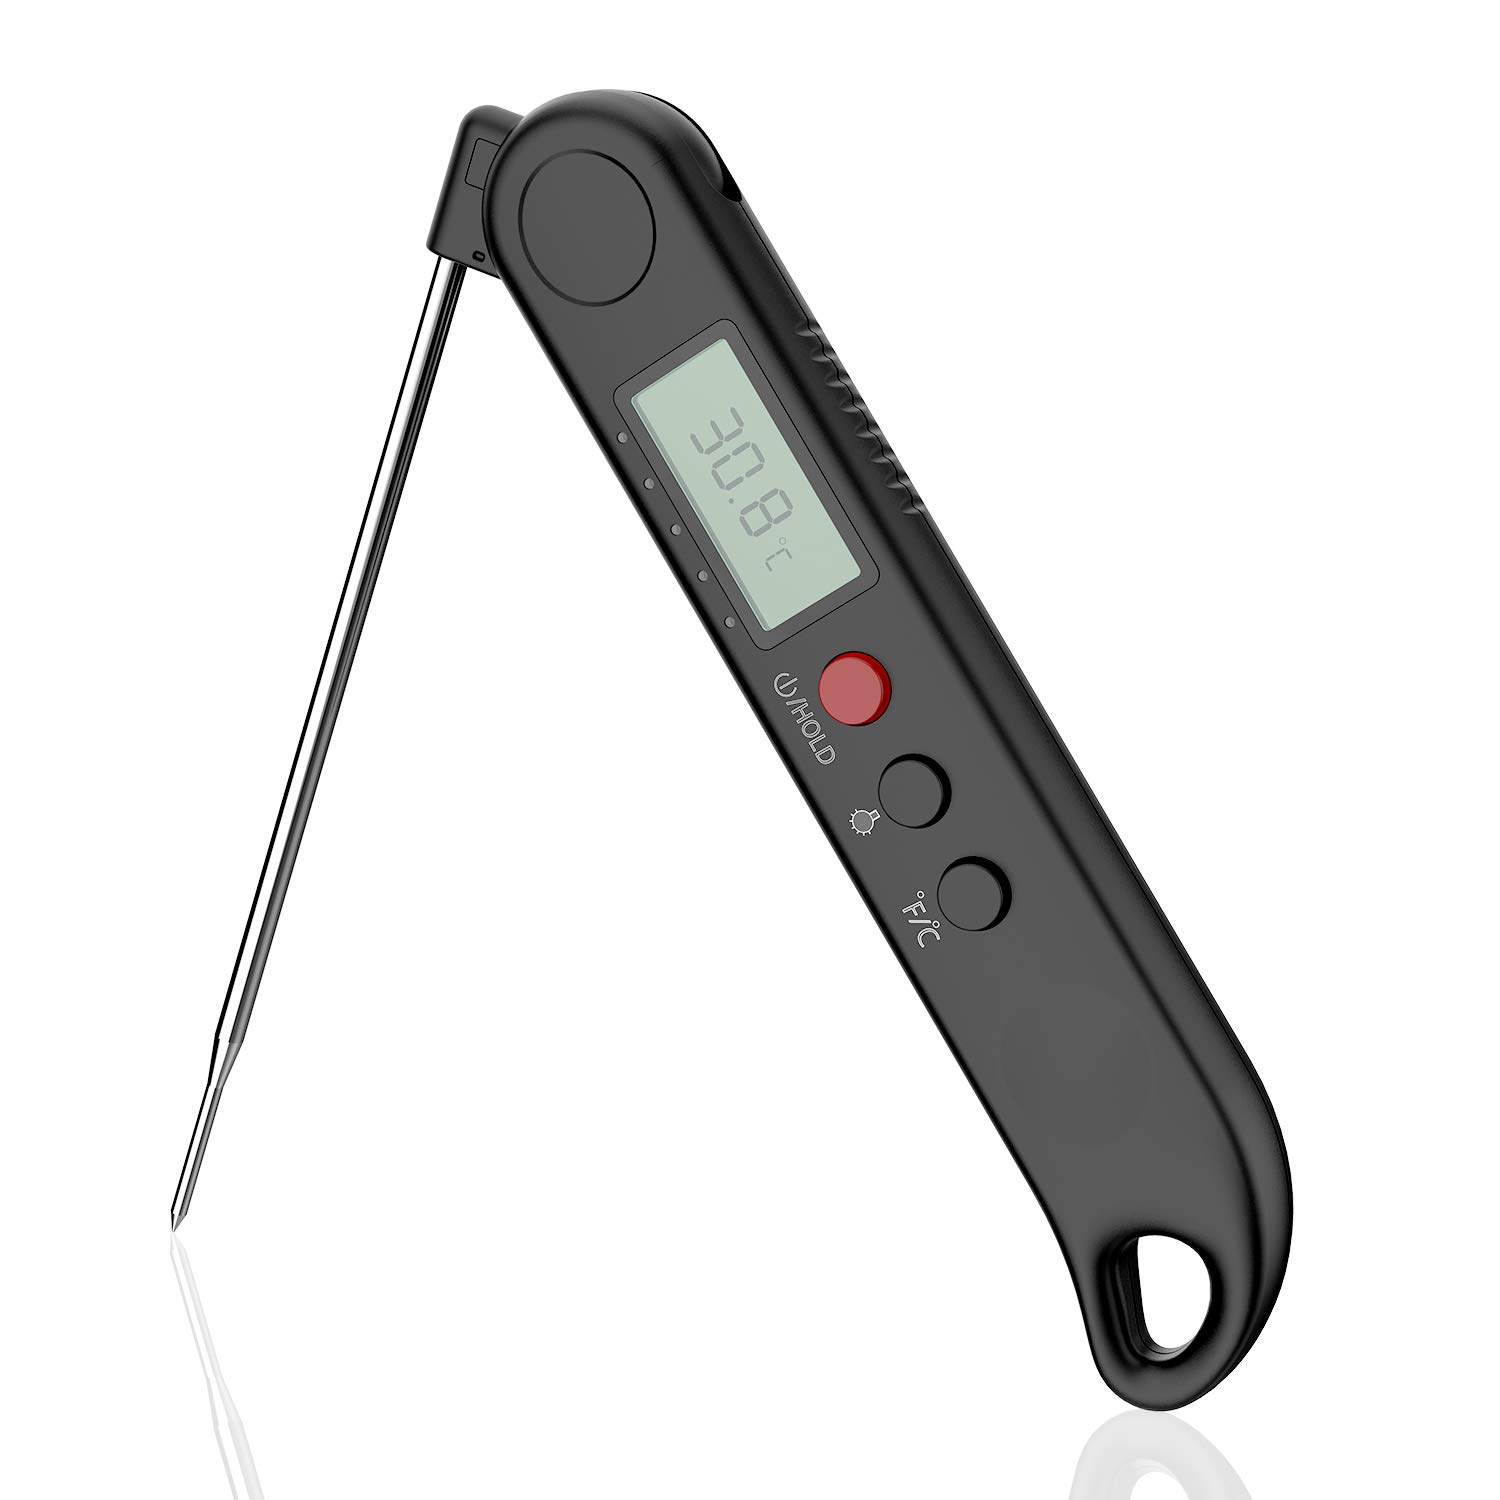 Nogis Waterproof Instant Read Meat Thermometer Digital Food Cooking Thermometer Built in Rechargeable Lithium Battery, Anti Corrosion Foldable Probe Kitchen, BBQ, Grill, Milk Bath Water (Black)